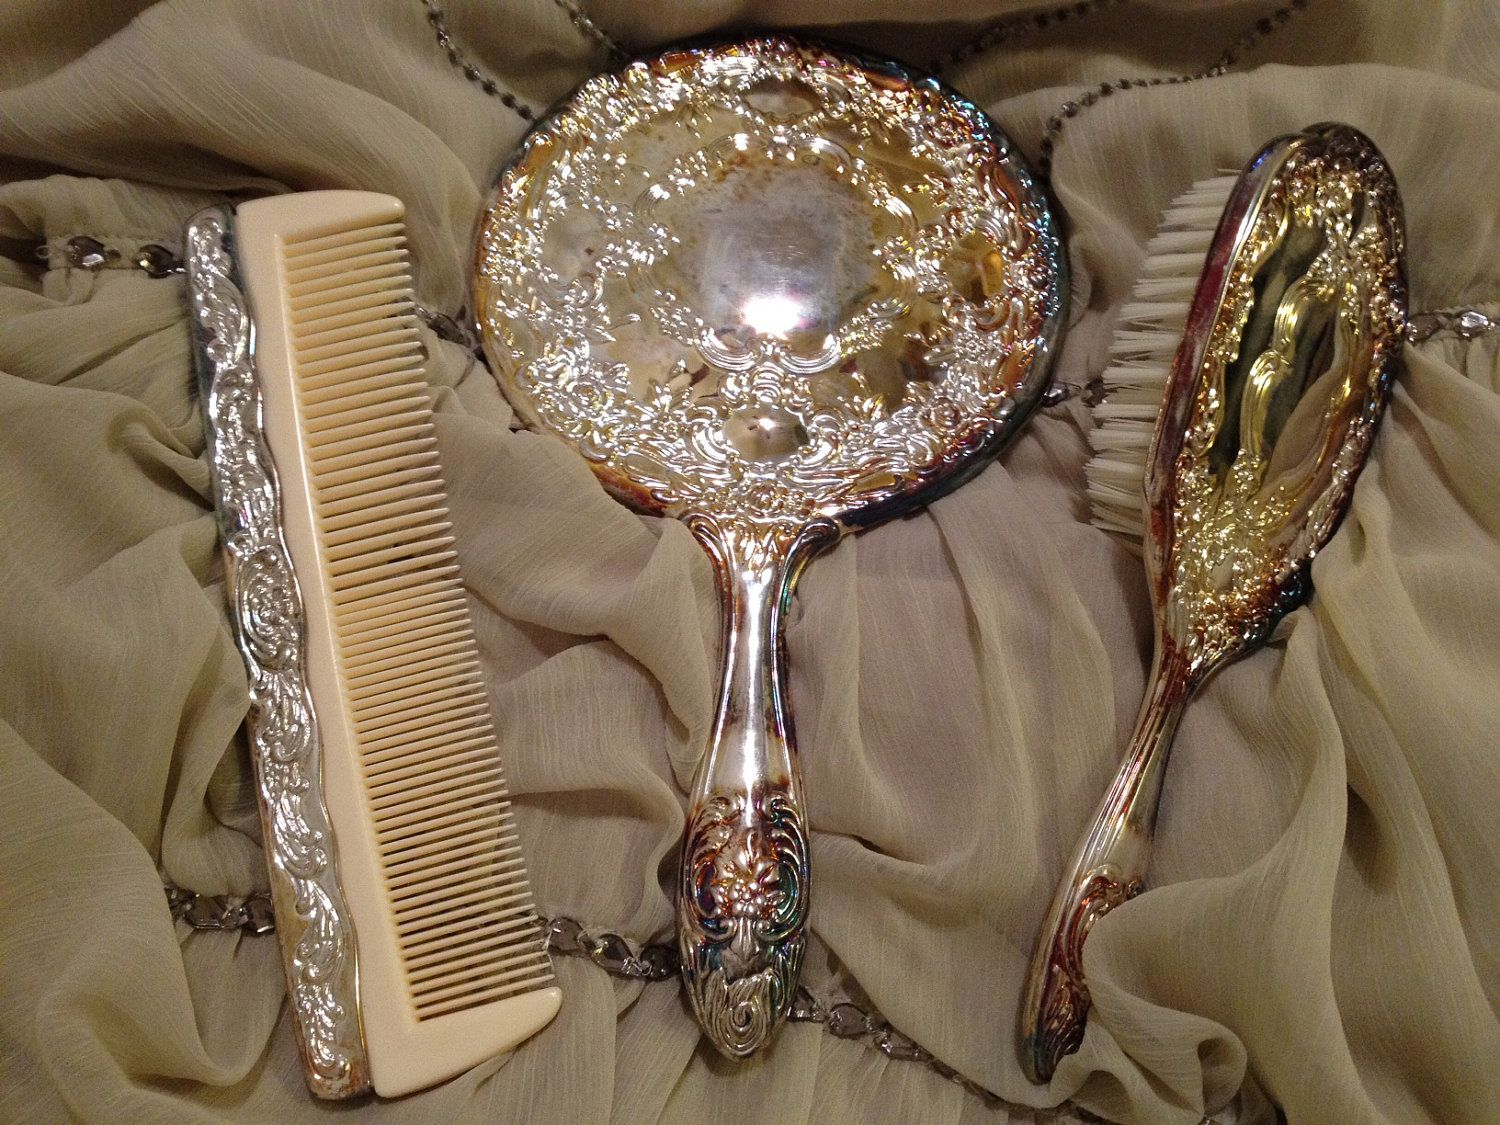 Needful Things Gorgeous Vintage Antique Silver-Plated 3-Piece Vanity Set. & GORGEOUS Vintage Antique Silver Plated 3 Piece Vanity Set Matching ...